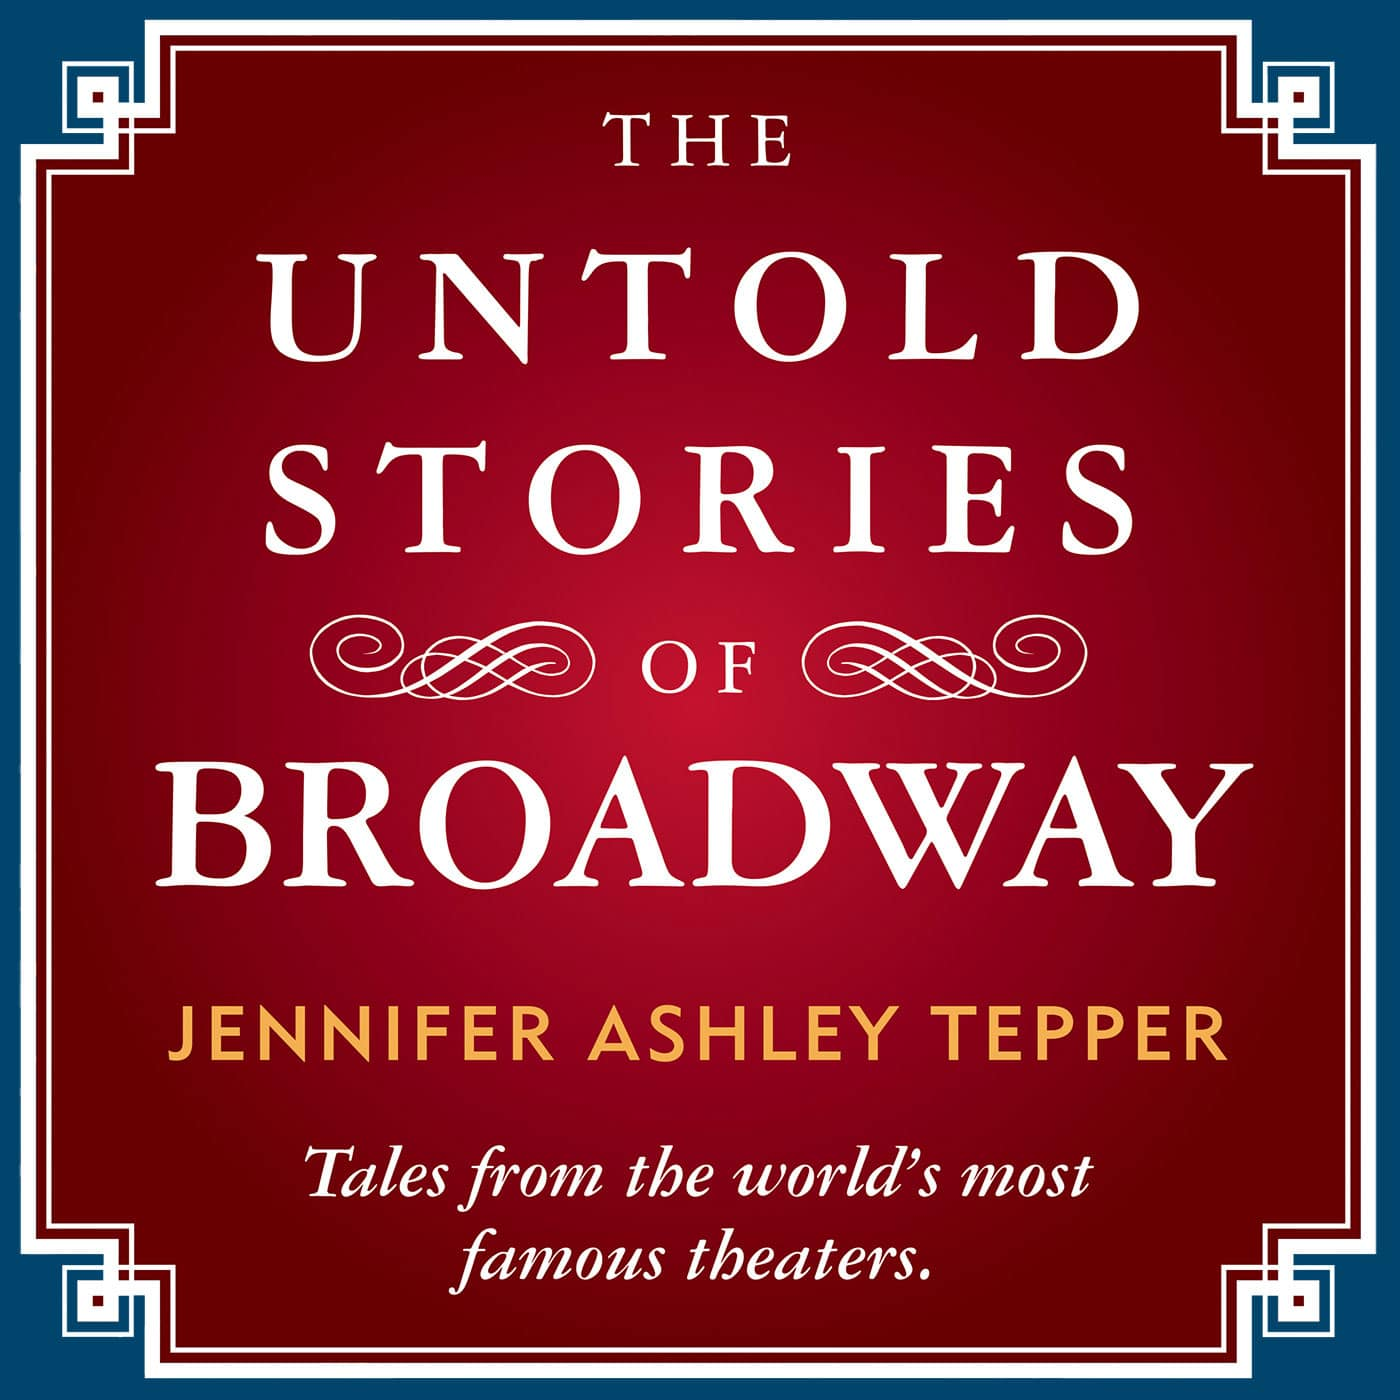 Untold Stories of Broadway Hosted by Jennifer Ashley Tepper